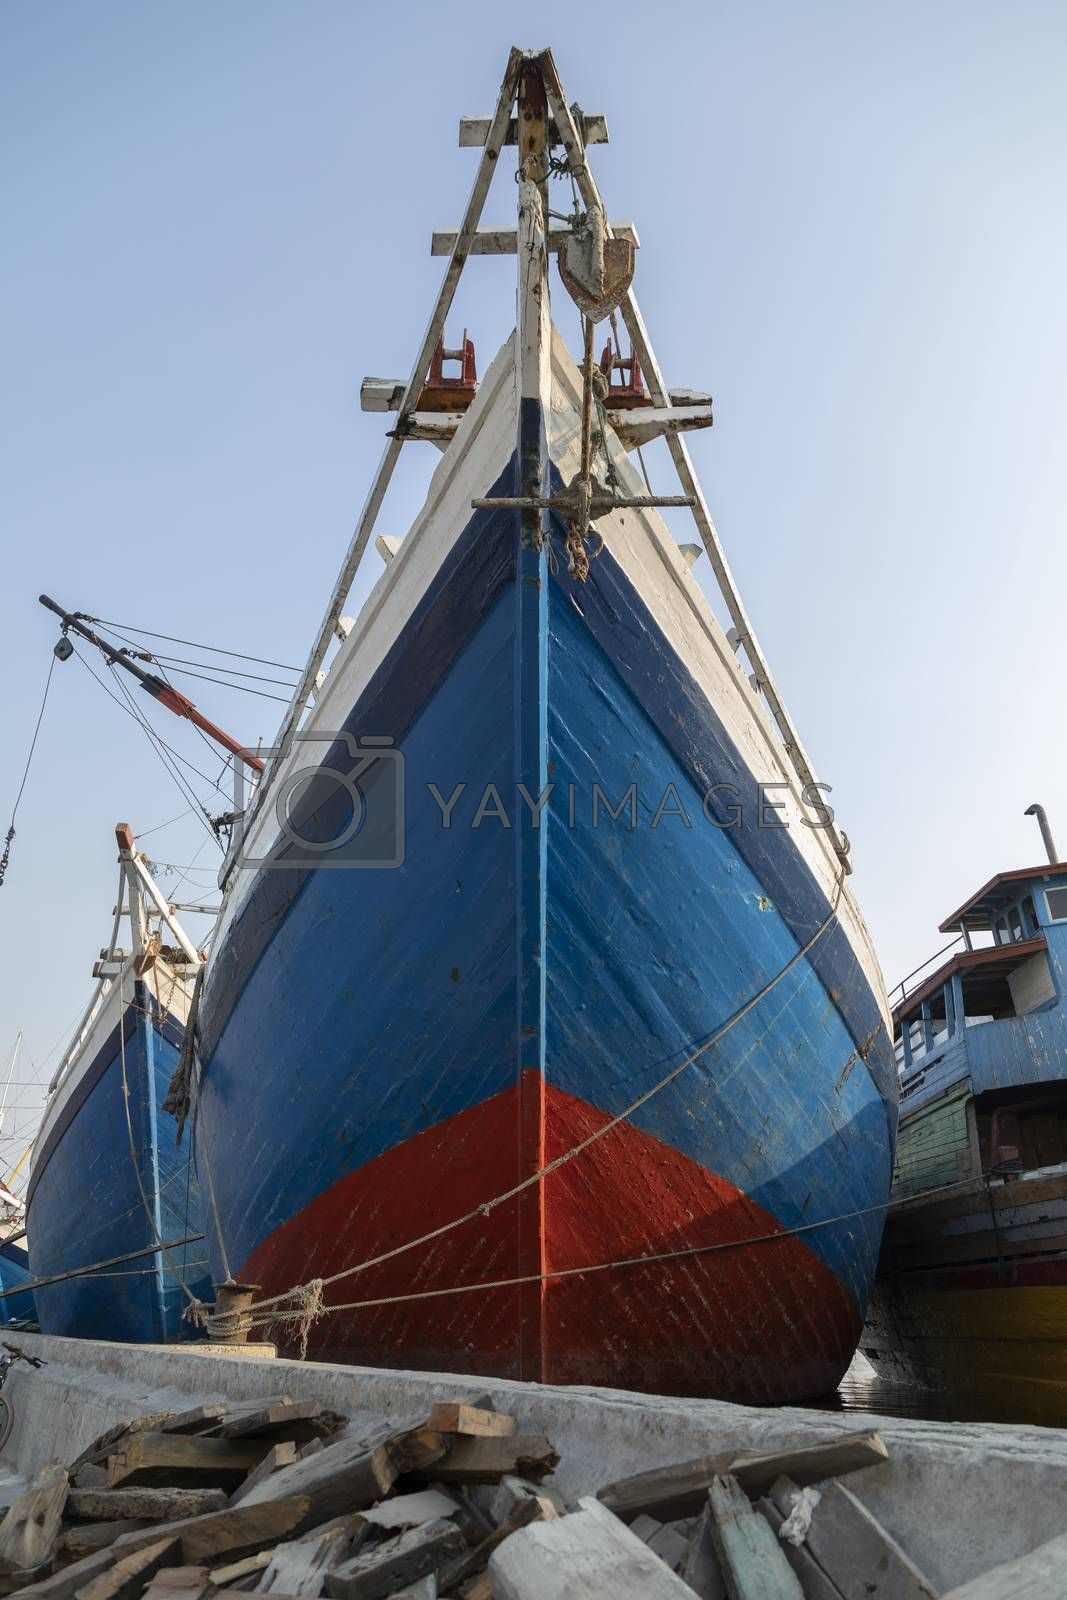 The bow of a huge old wooden boat, built in the traditional way, in the port of the city of Jakarta. Used to transport all kinds of merchandise between the islands.